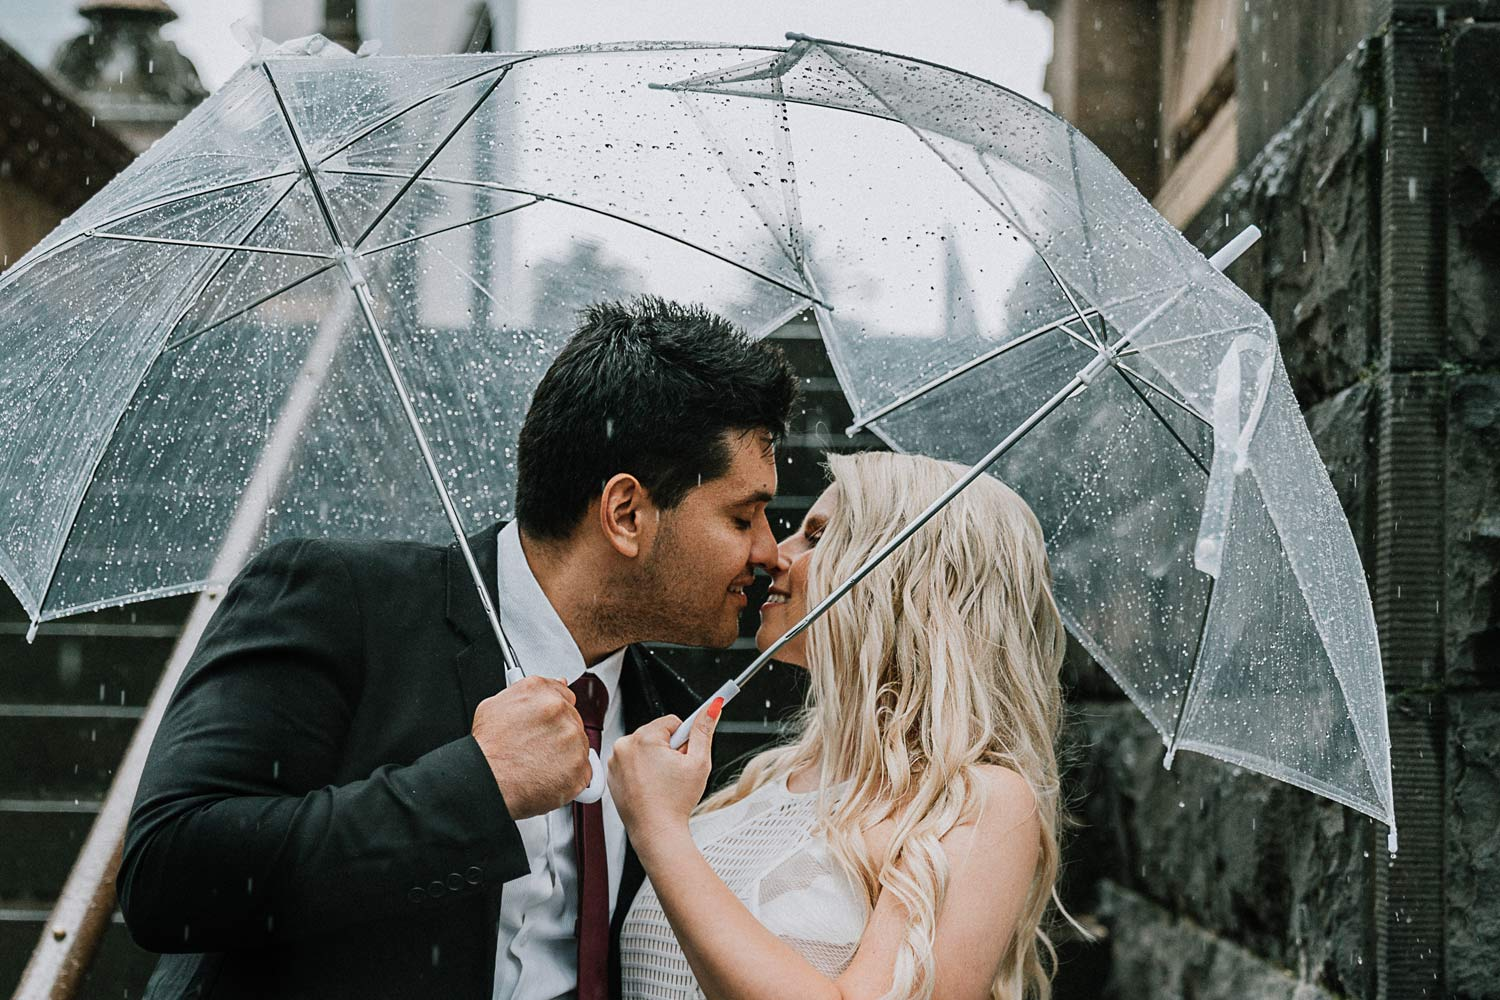 Melbourne couple holding clear umbrellas during a rainy day for pre wedding photo shoot